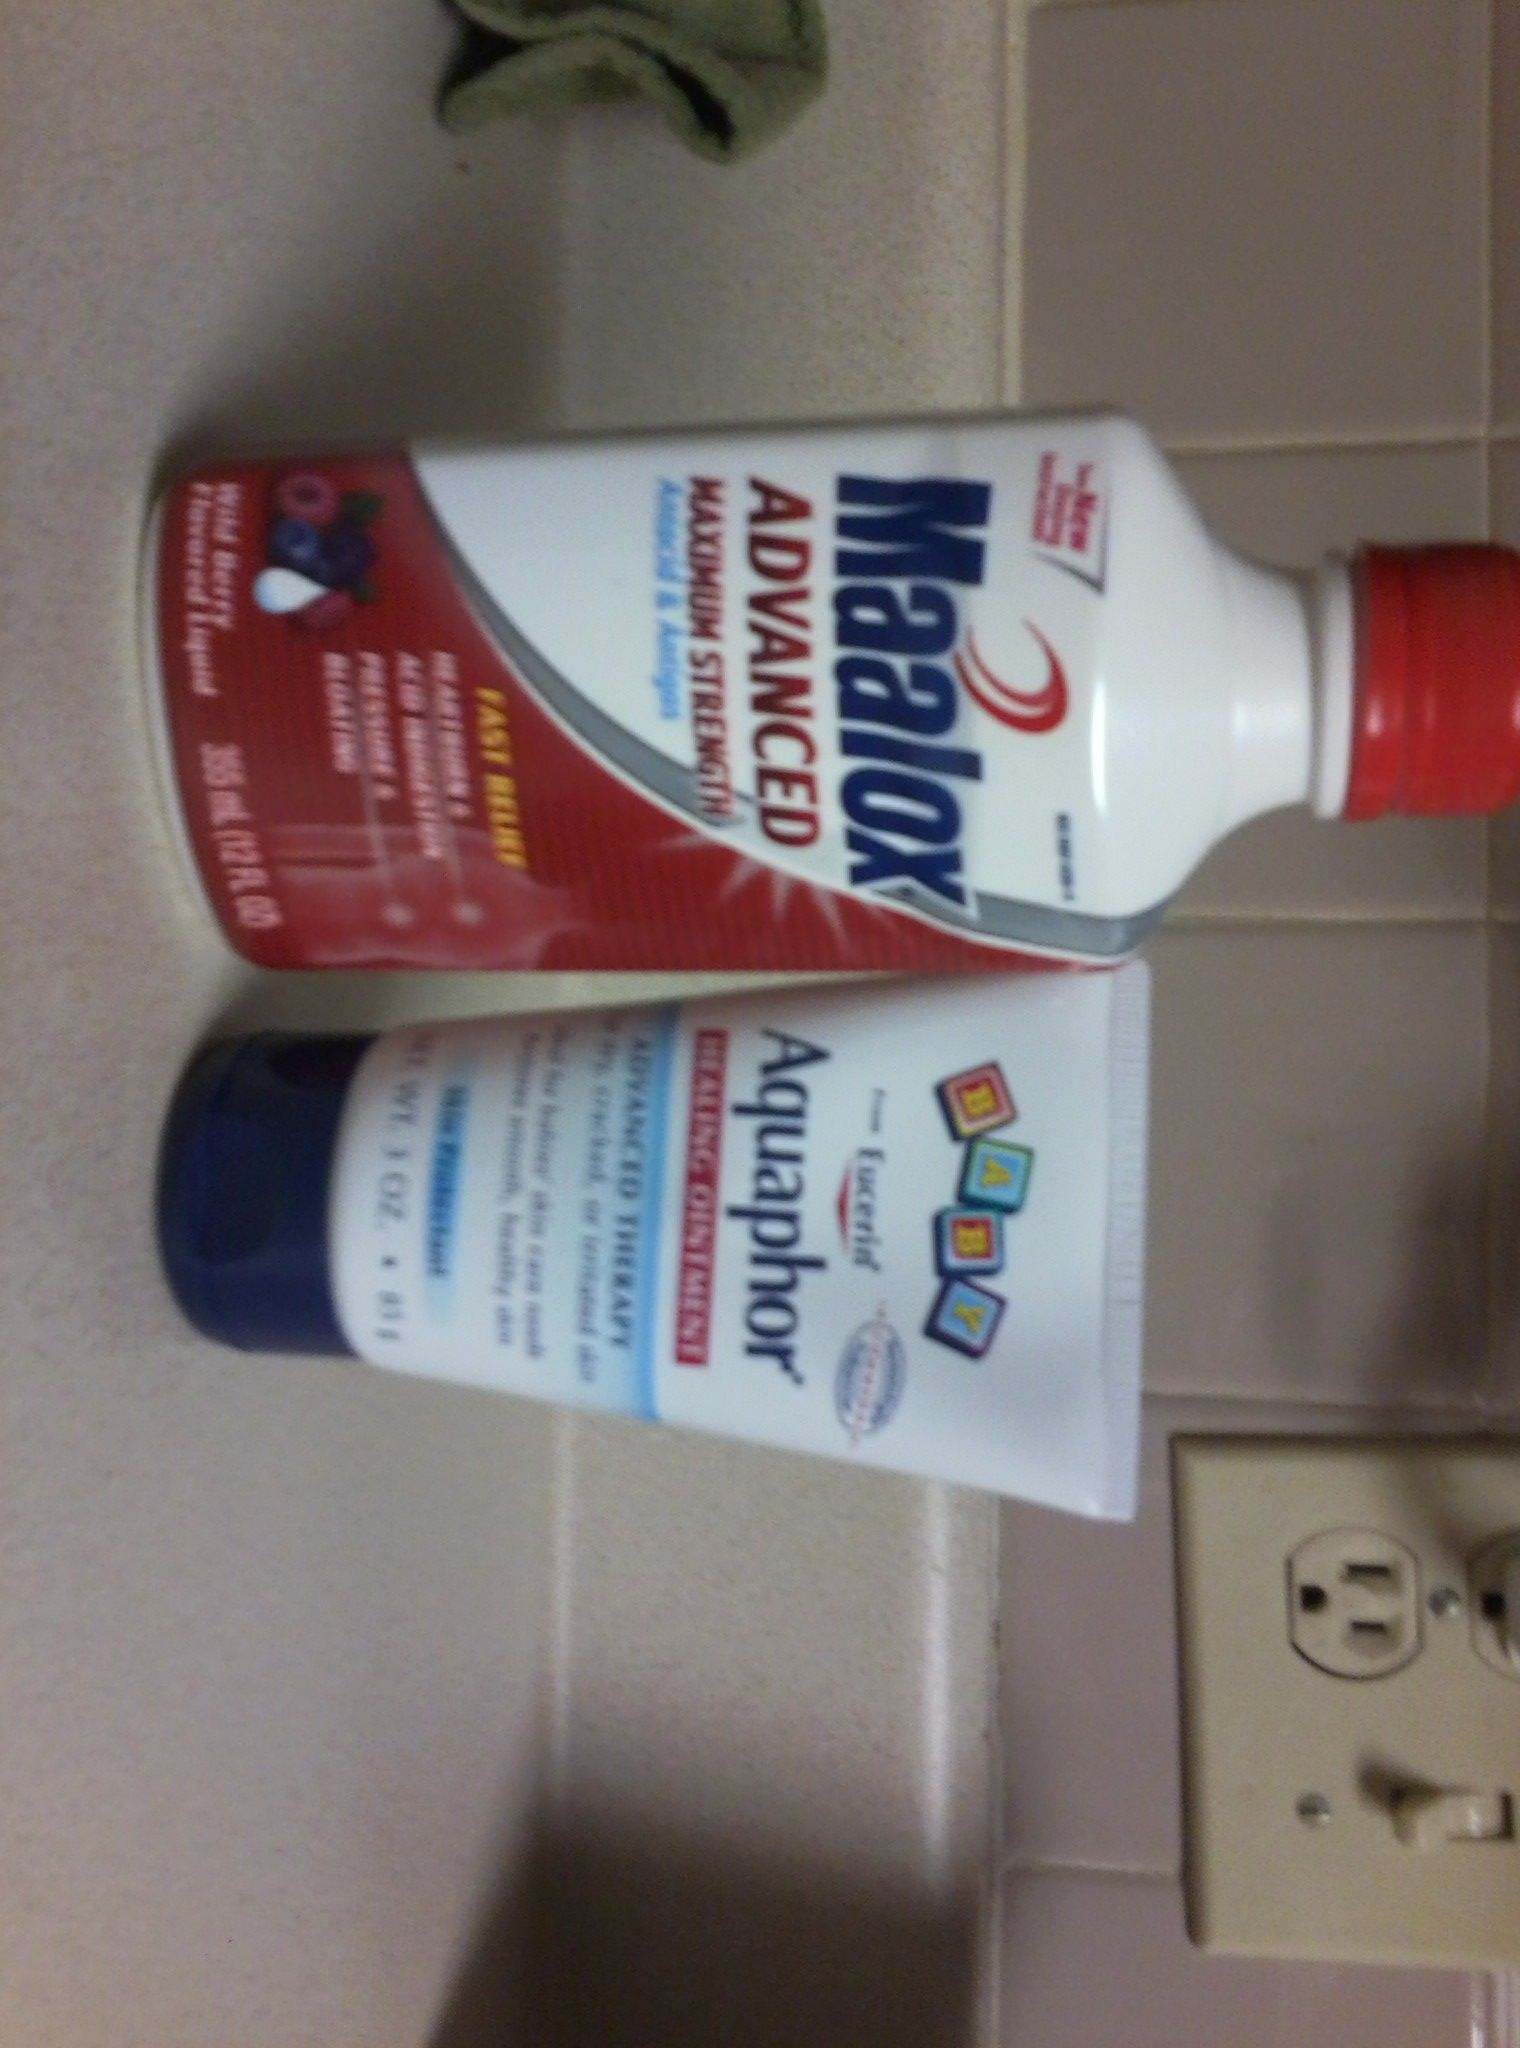 Great Diaper Rash Cream My Sons Diaper Rash Was So Bad From Medicine His Bottom Was Bleeding And His Doctor Told Me To Try This Because Nothing Was